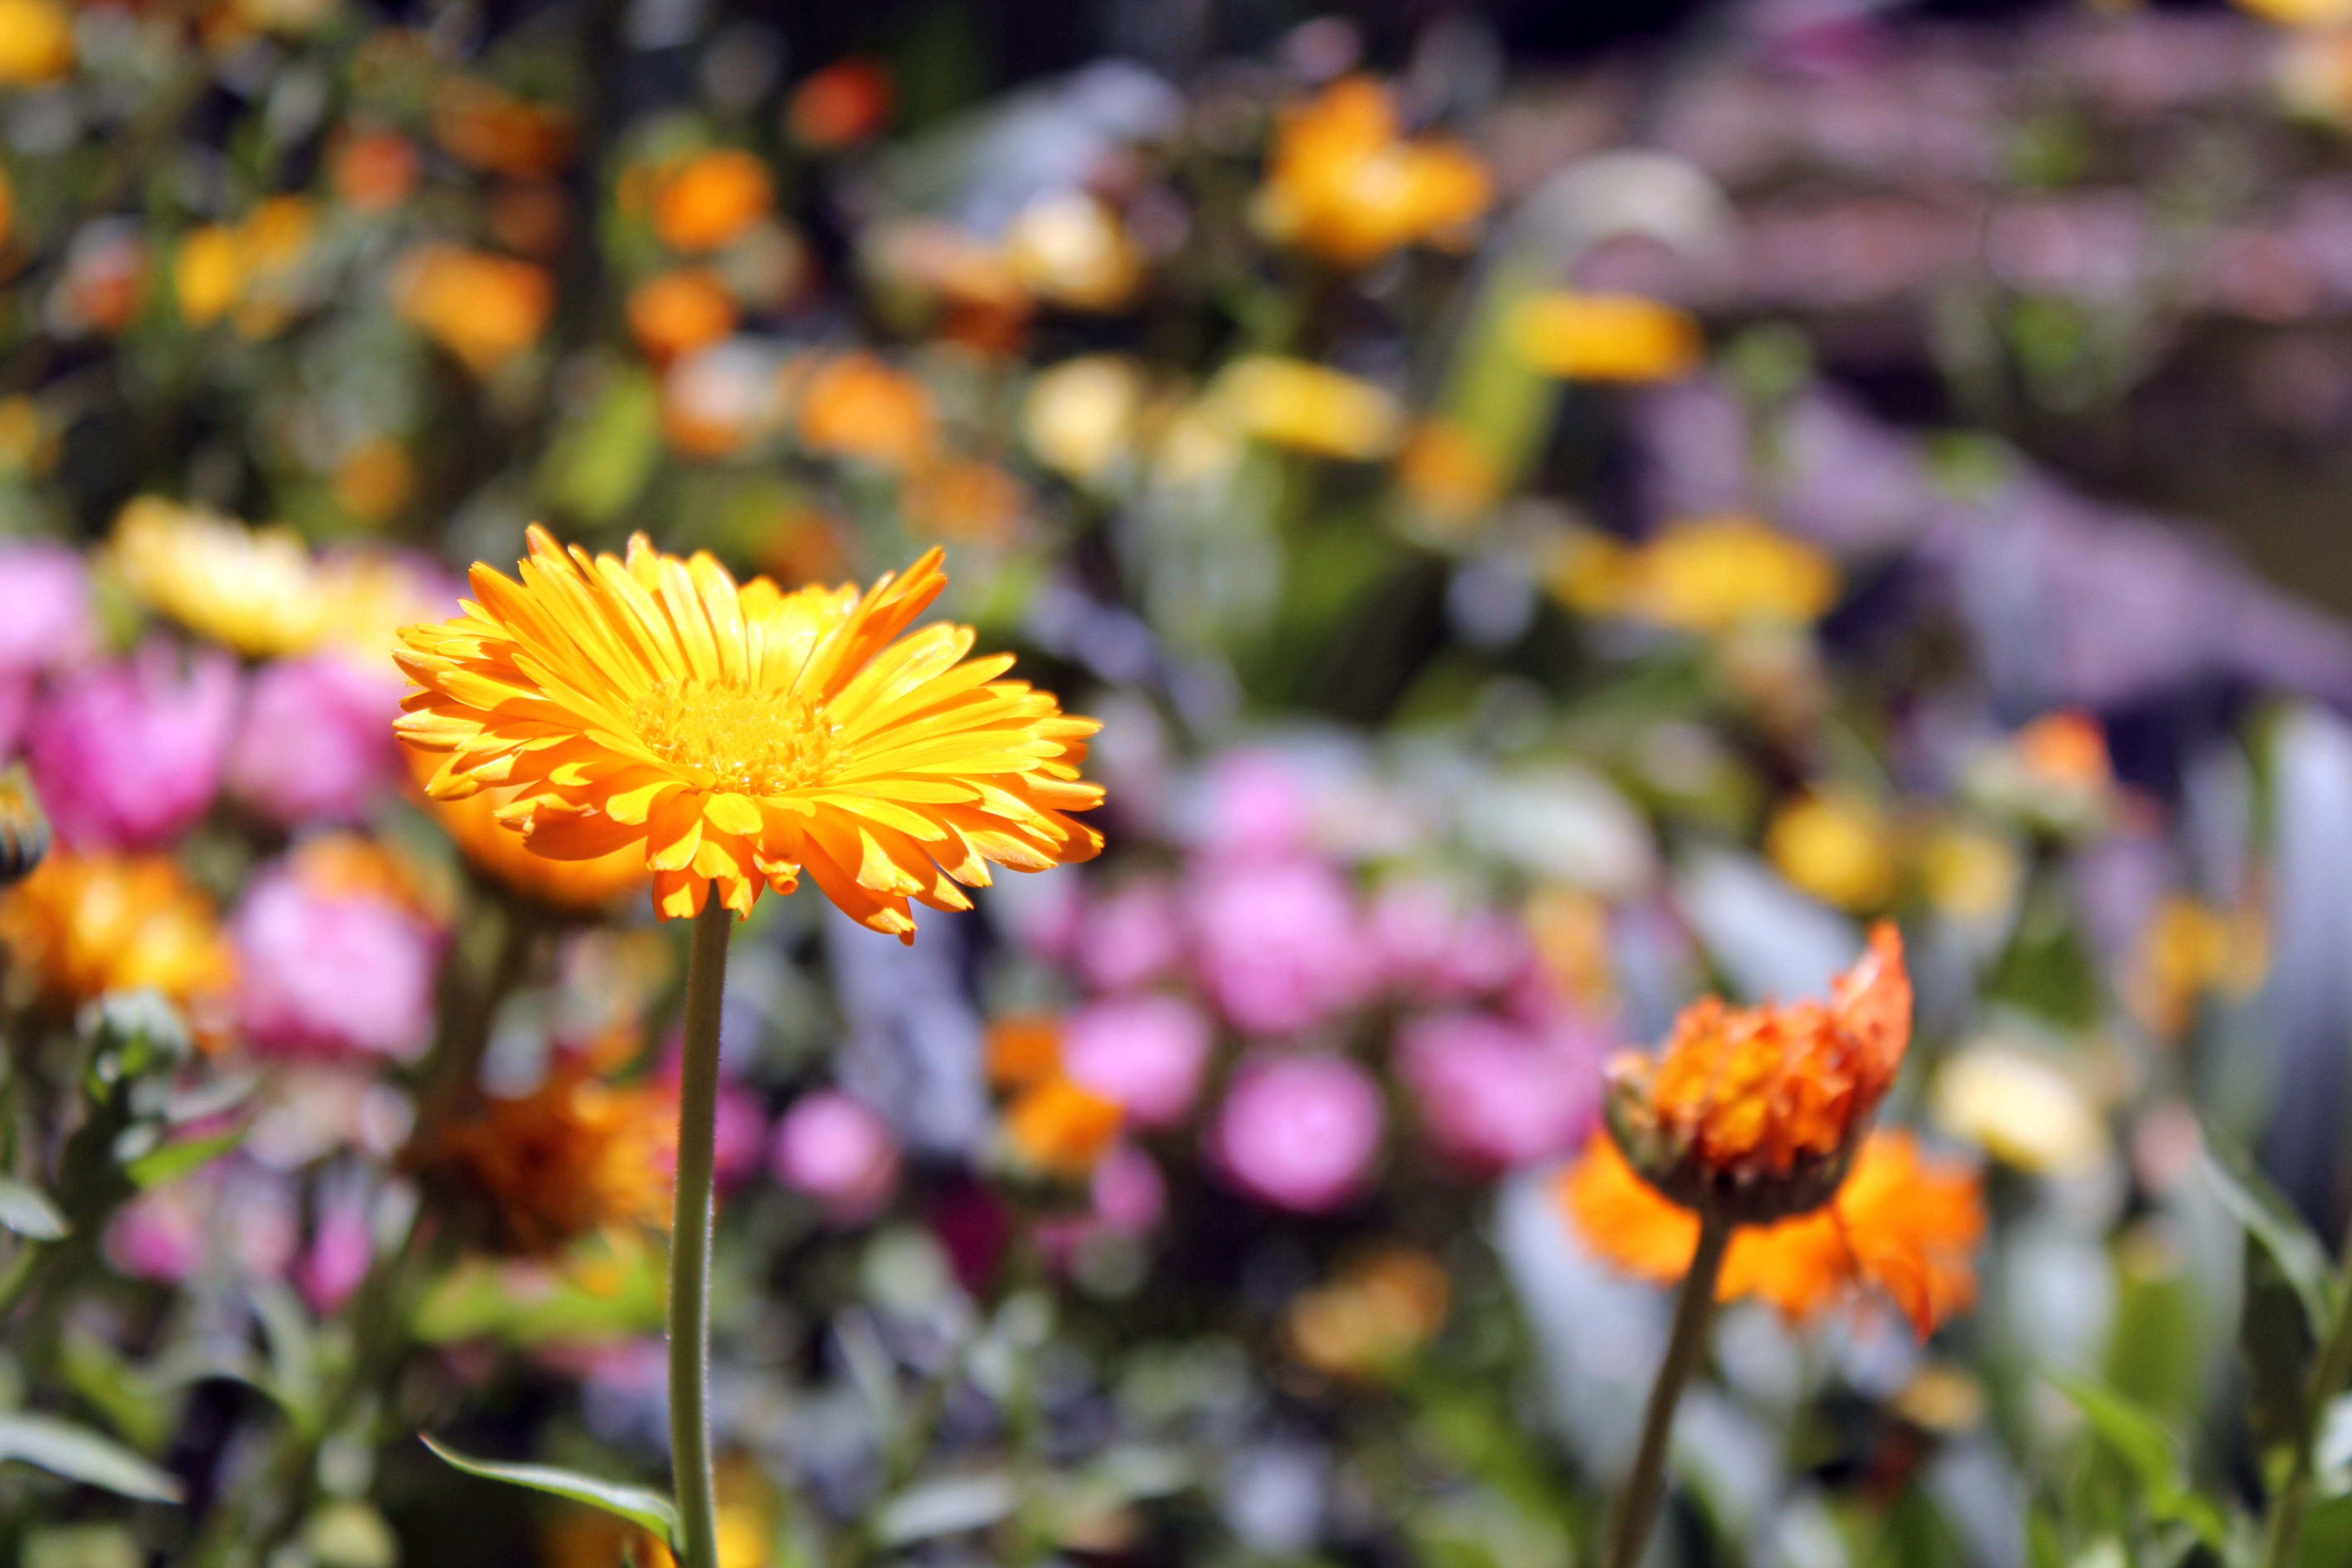 Free stock photo of flowers, yellow daisy